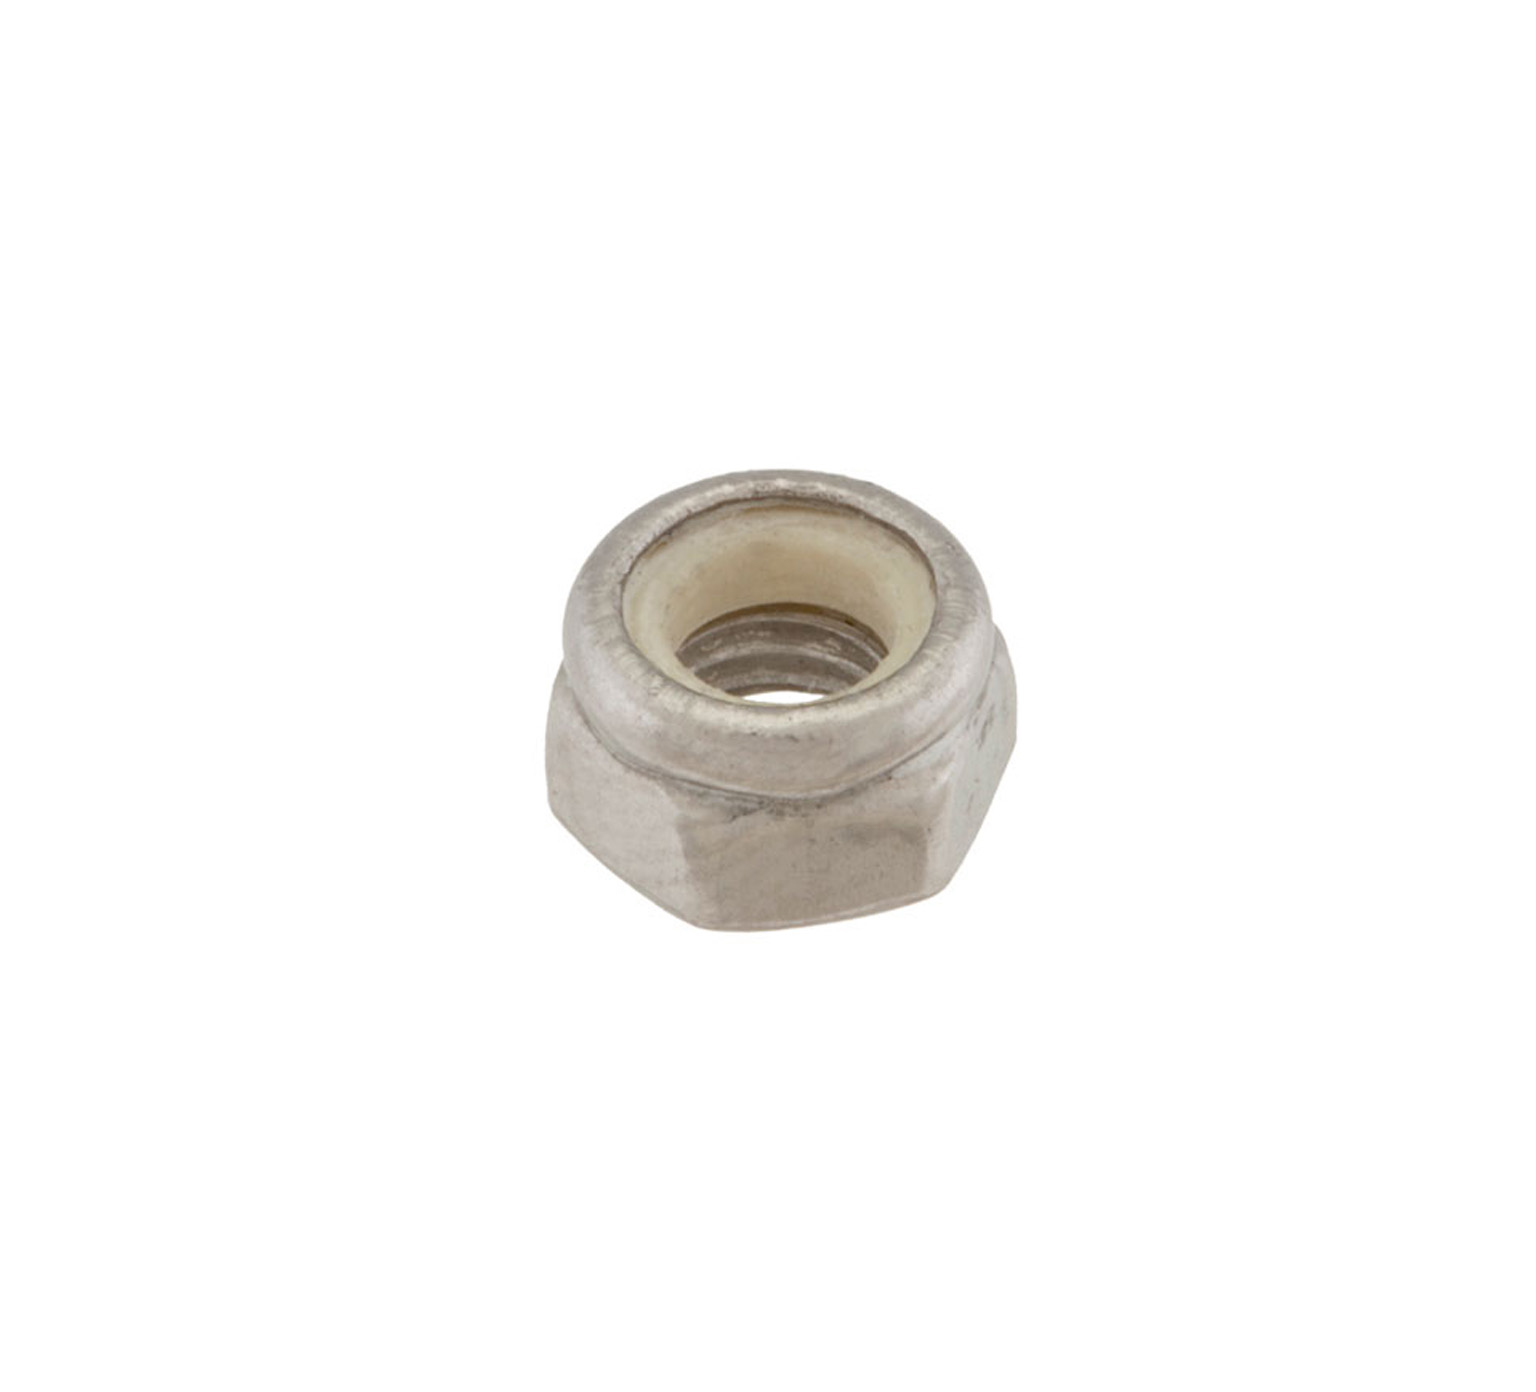 09739 Stainless Steel Hex Lock Nut - M5 Thread x 0.2 in alt 1